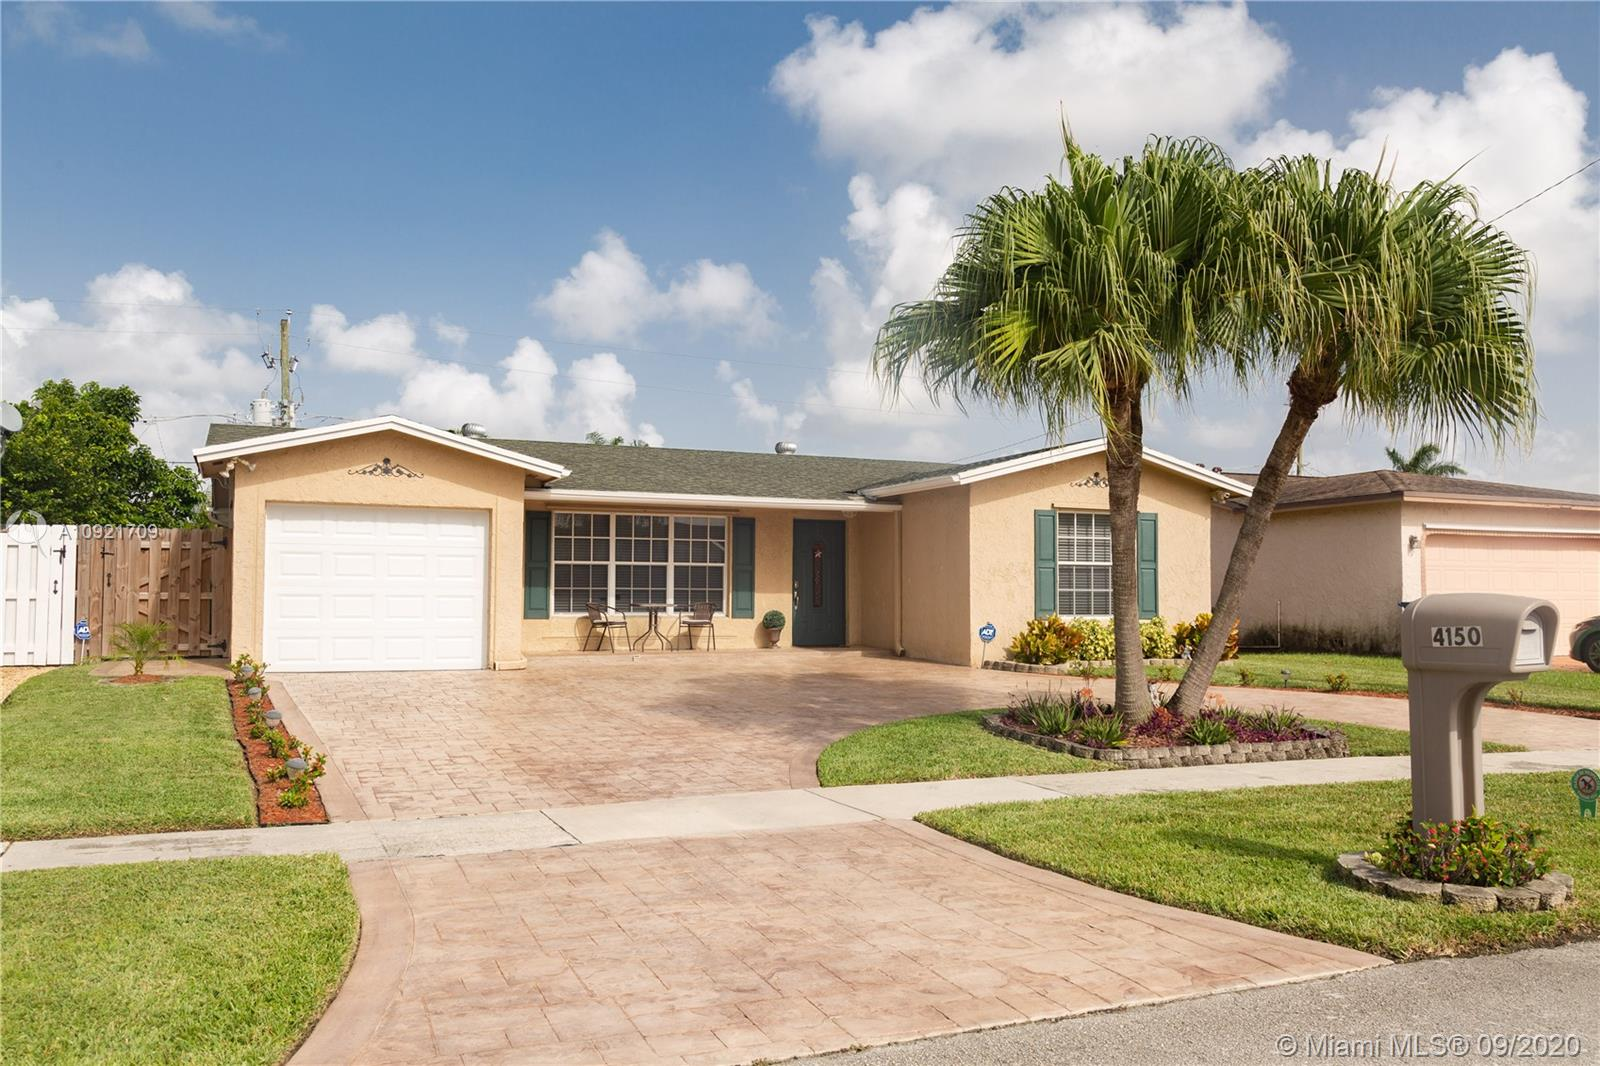 Sunrise Golf Village - 4150 NW 113 Terrace, Sunrise, FL 33323